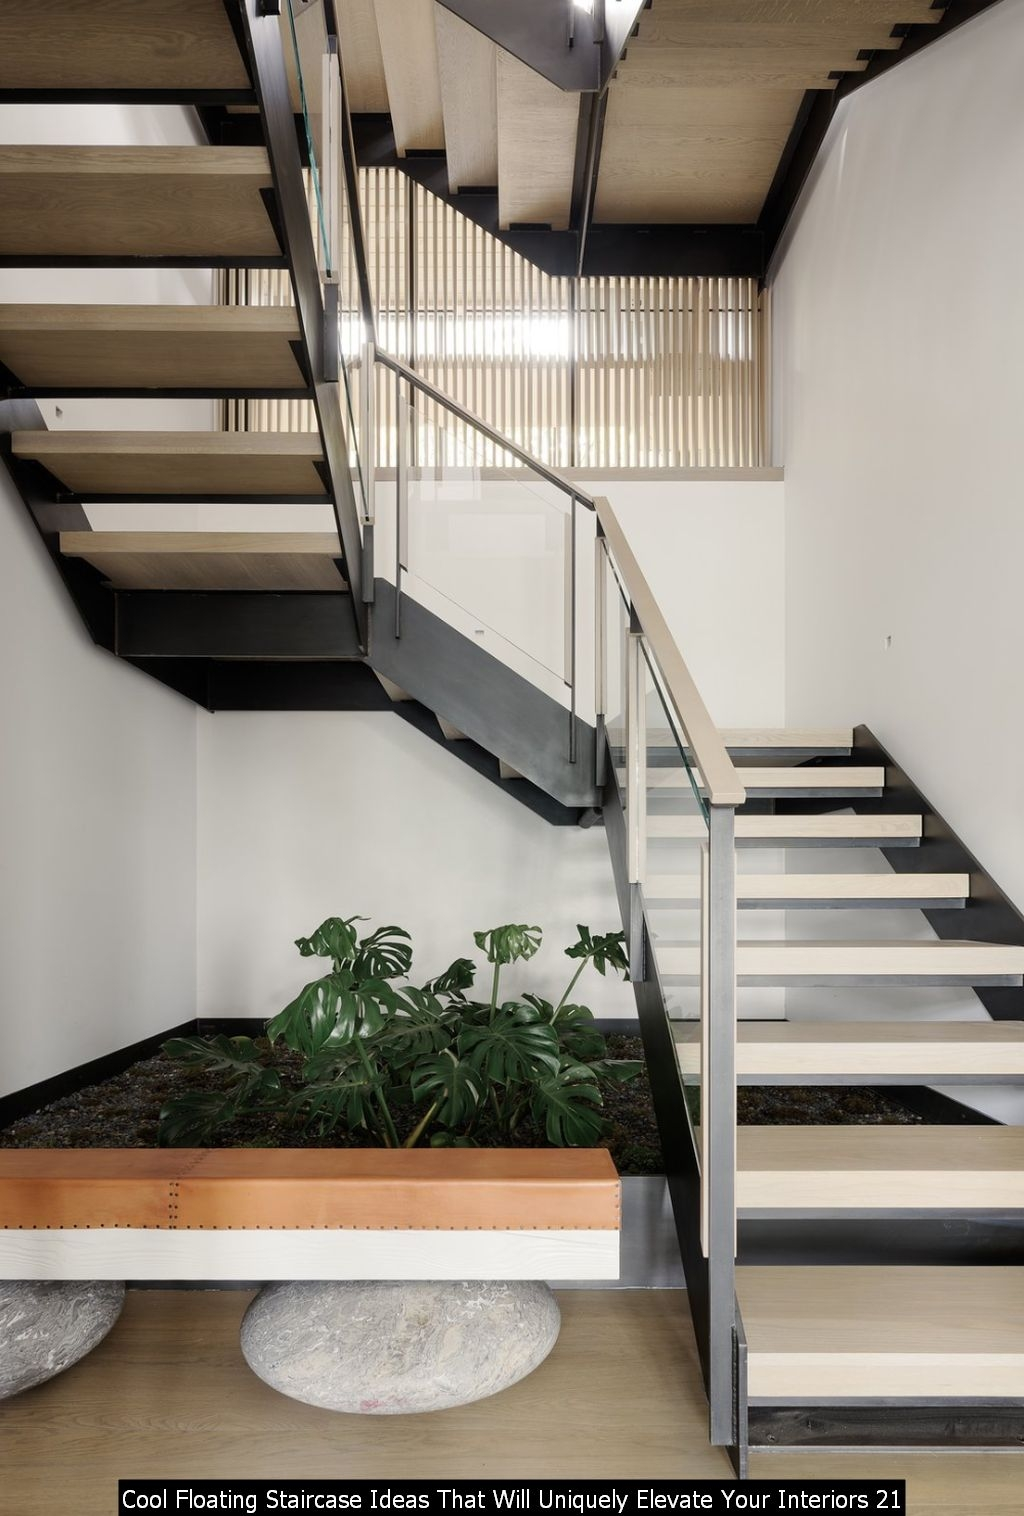 Cool Floating Staircase Ideas That Will Uniquely Elevate Your Interiors 21